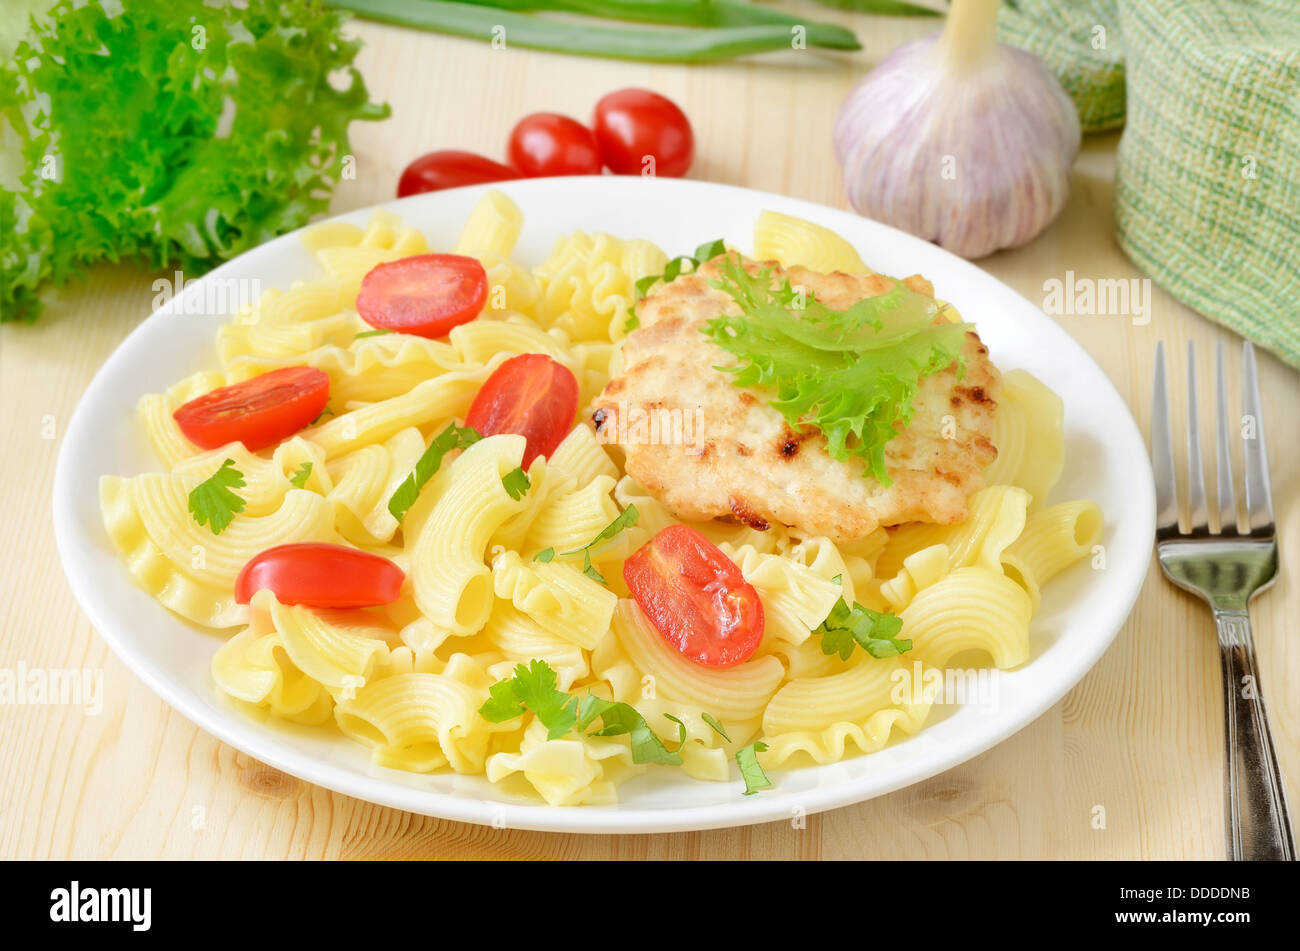 Pasta with tomatoes and chicken cutlet on white plate on the wooden table - Stock Image